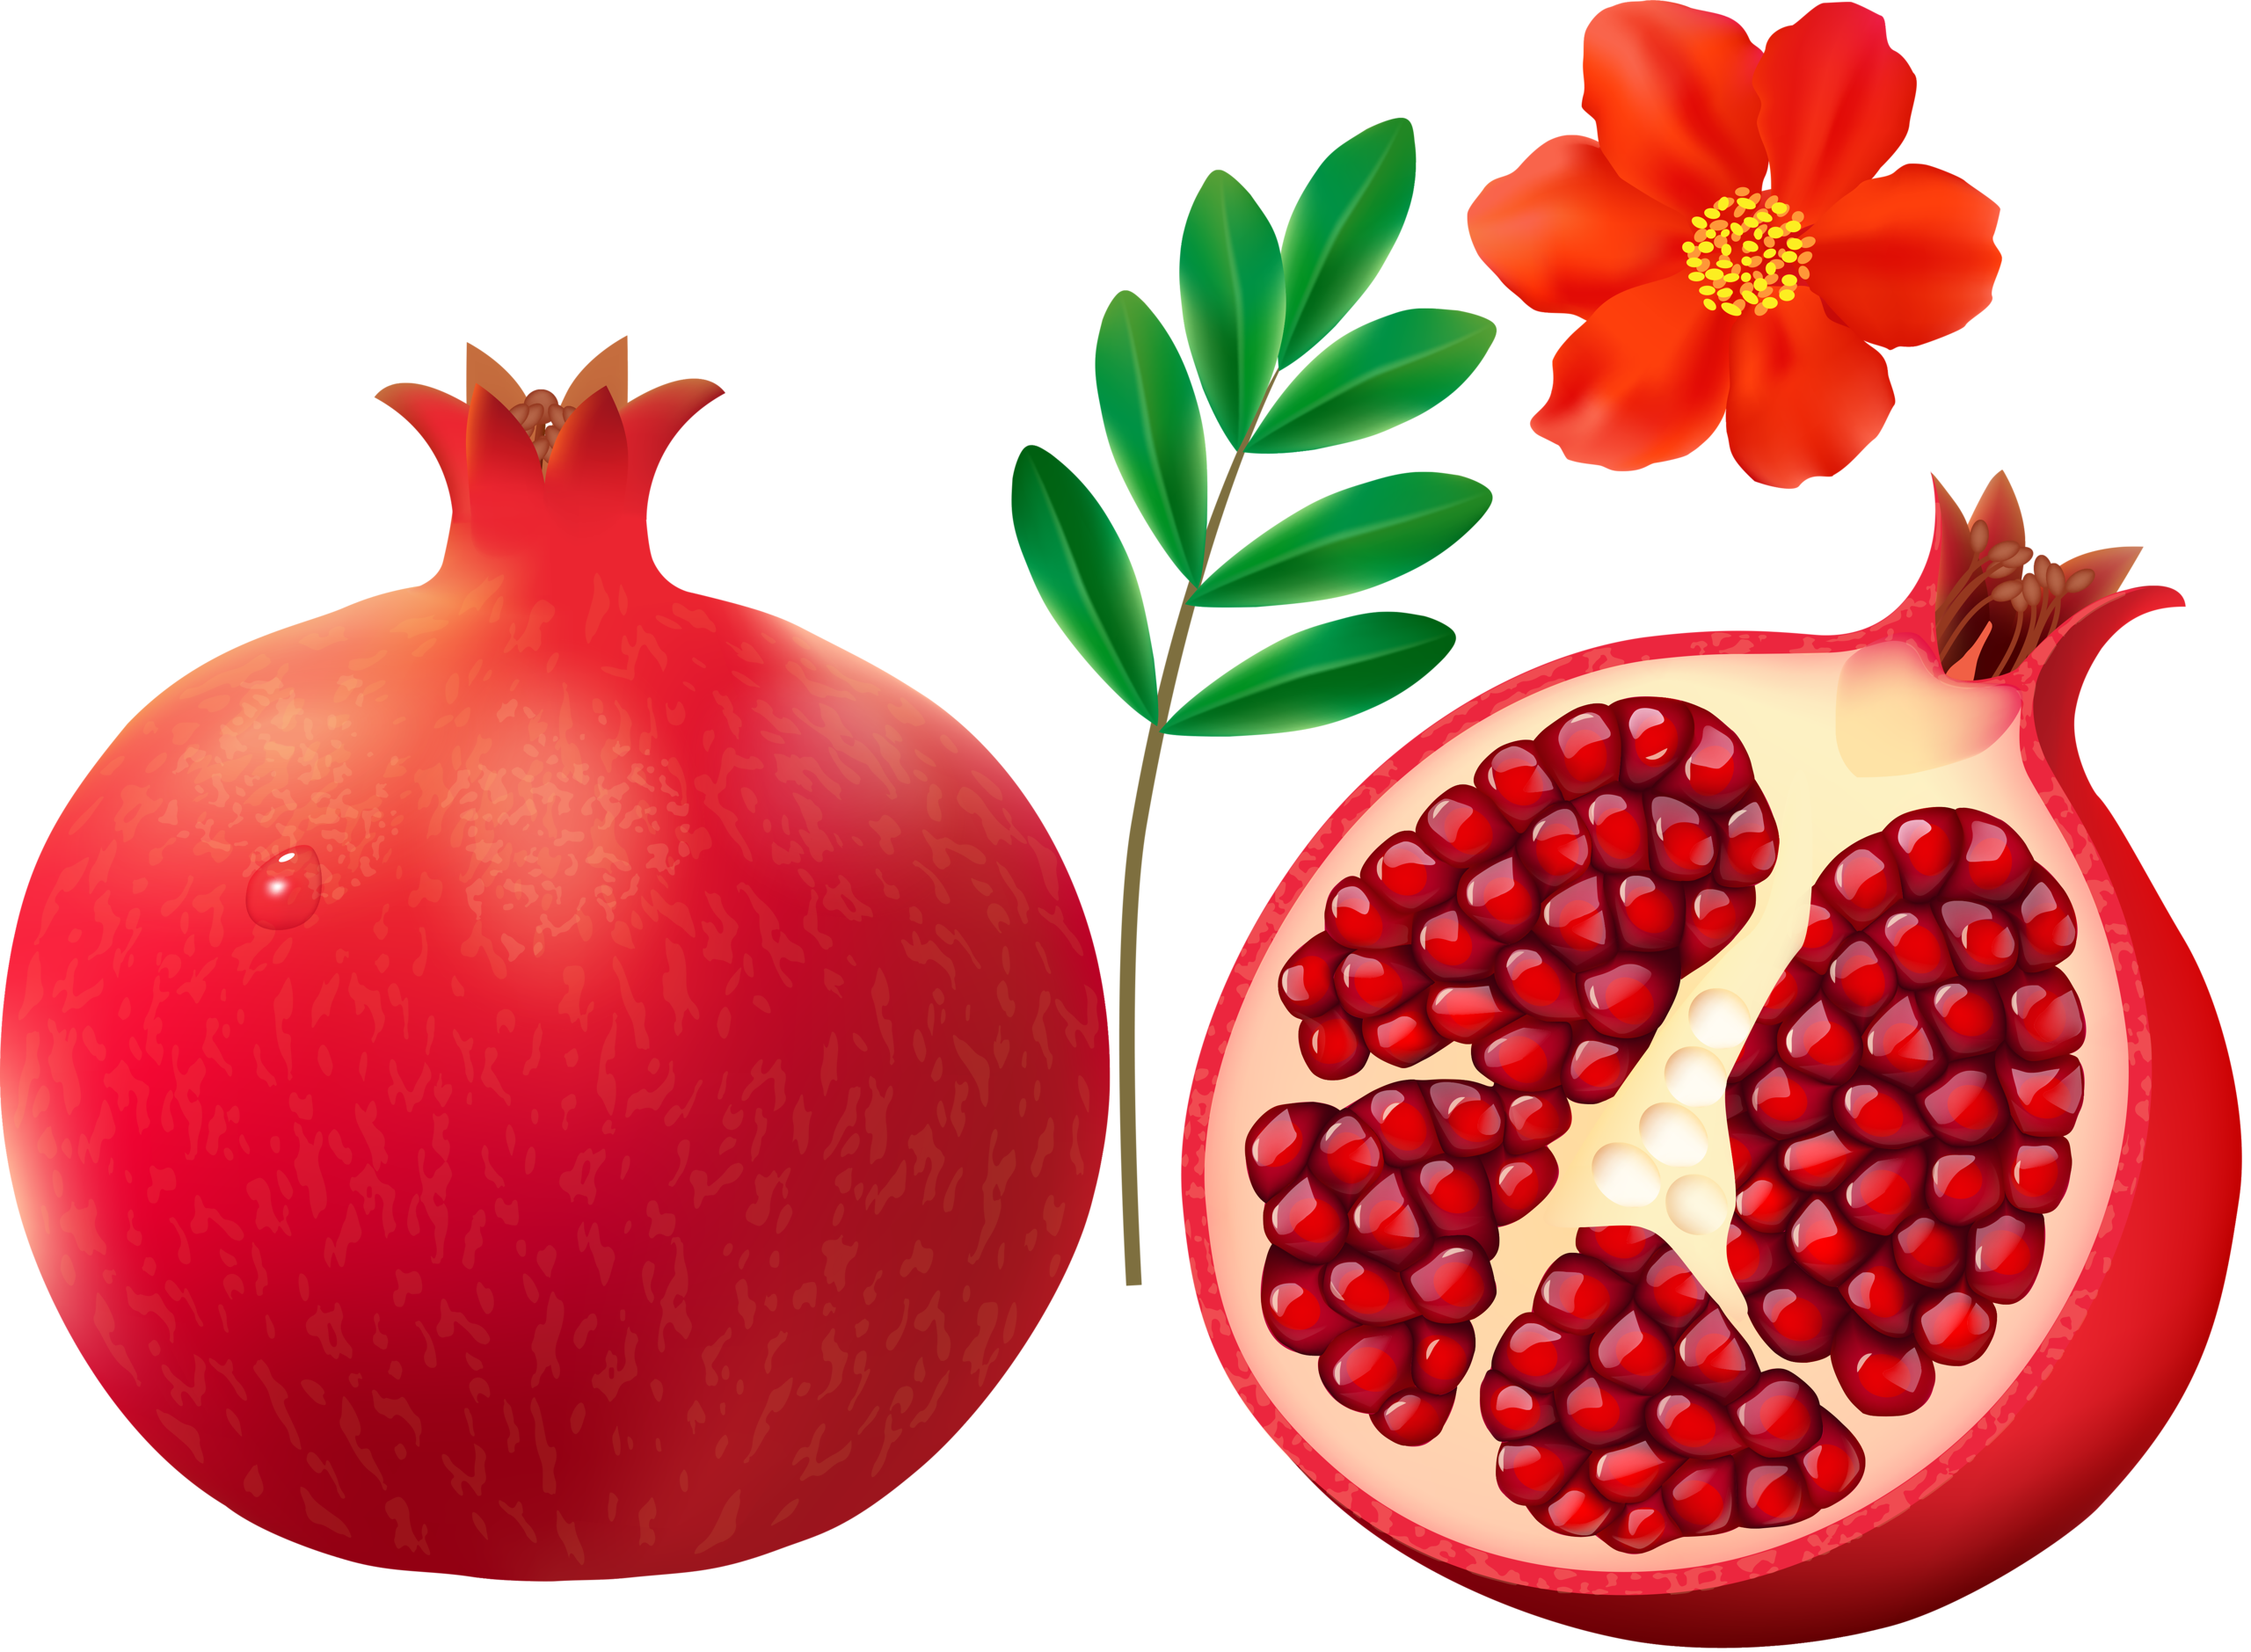 picture On white background png. Pomegranate clipart.